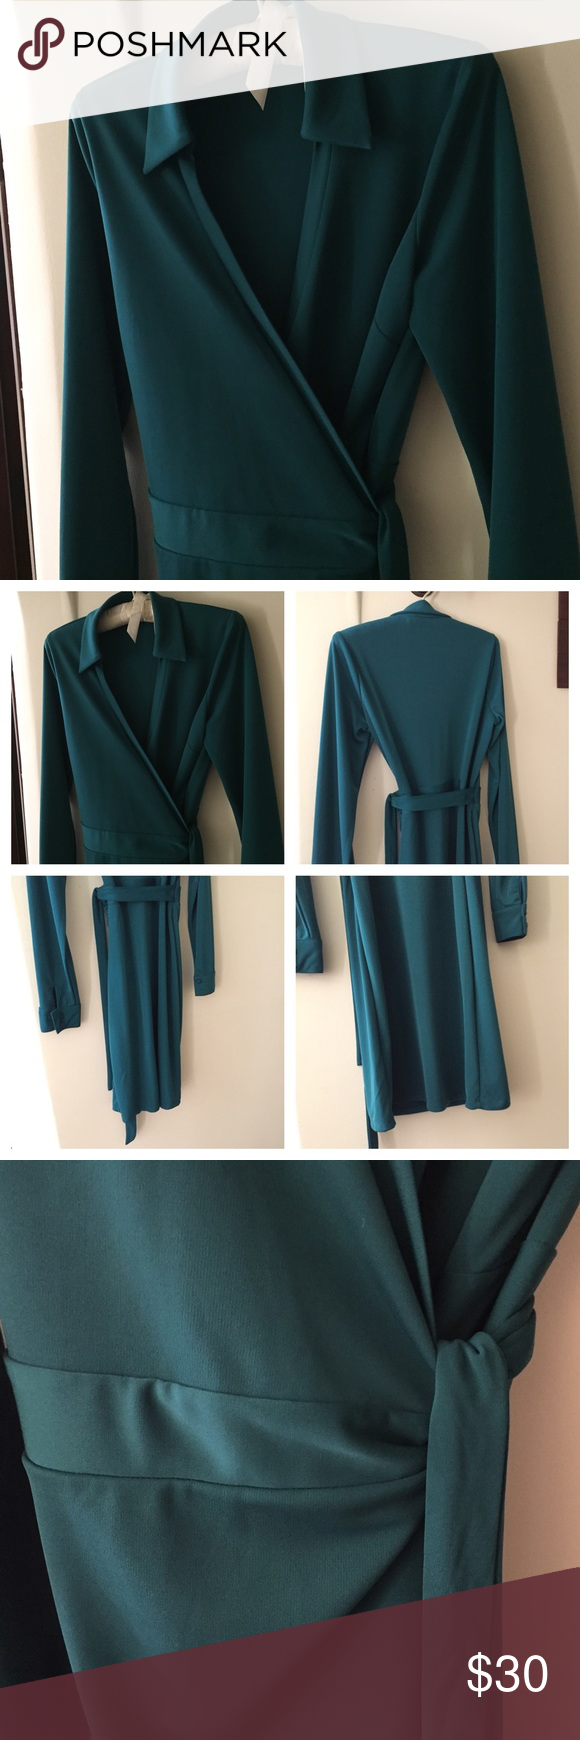 The Limited Green Wrap Dress • Sz M Gorgeous shade of green wrap dress from The Limited (not blue or teal - color was hard to capture).  Worn a handful of times and in great condition. Long sleeved with buttoned cuffs. Absolutely love this dress - only selling because it's no longer my size. Size M. The Limited Dresses